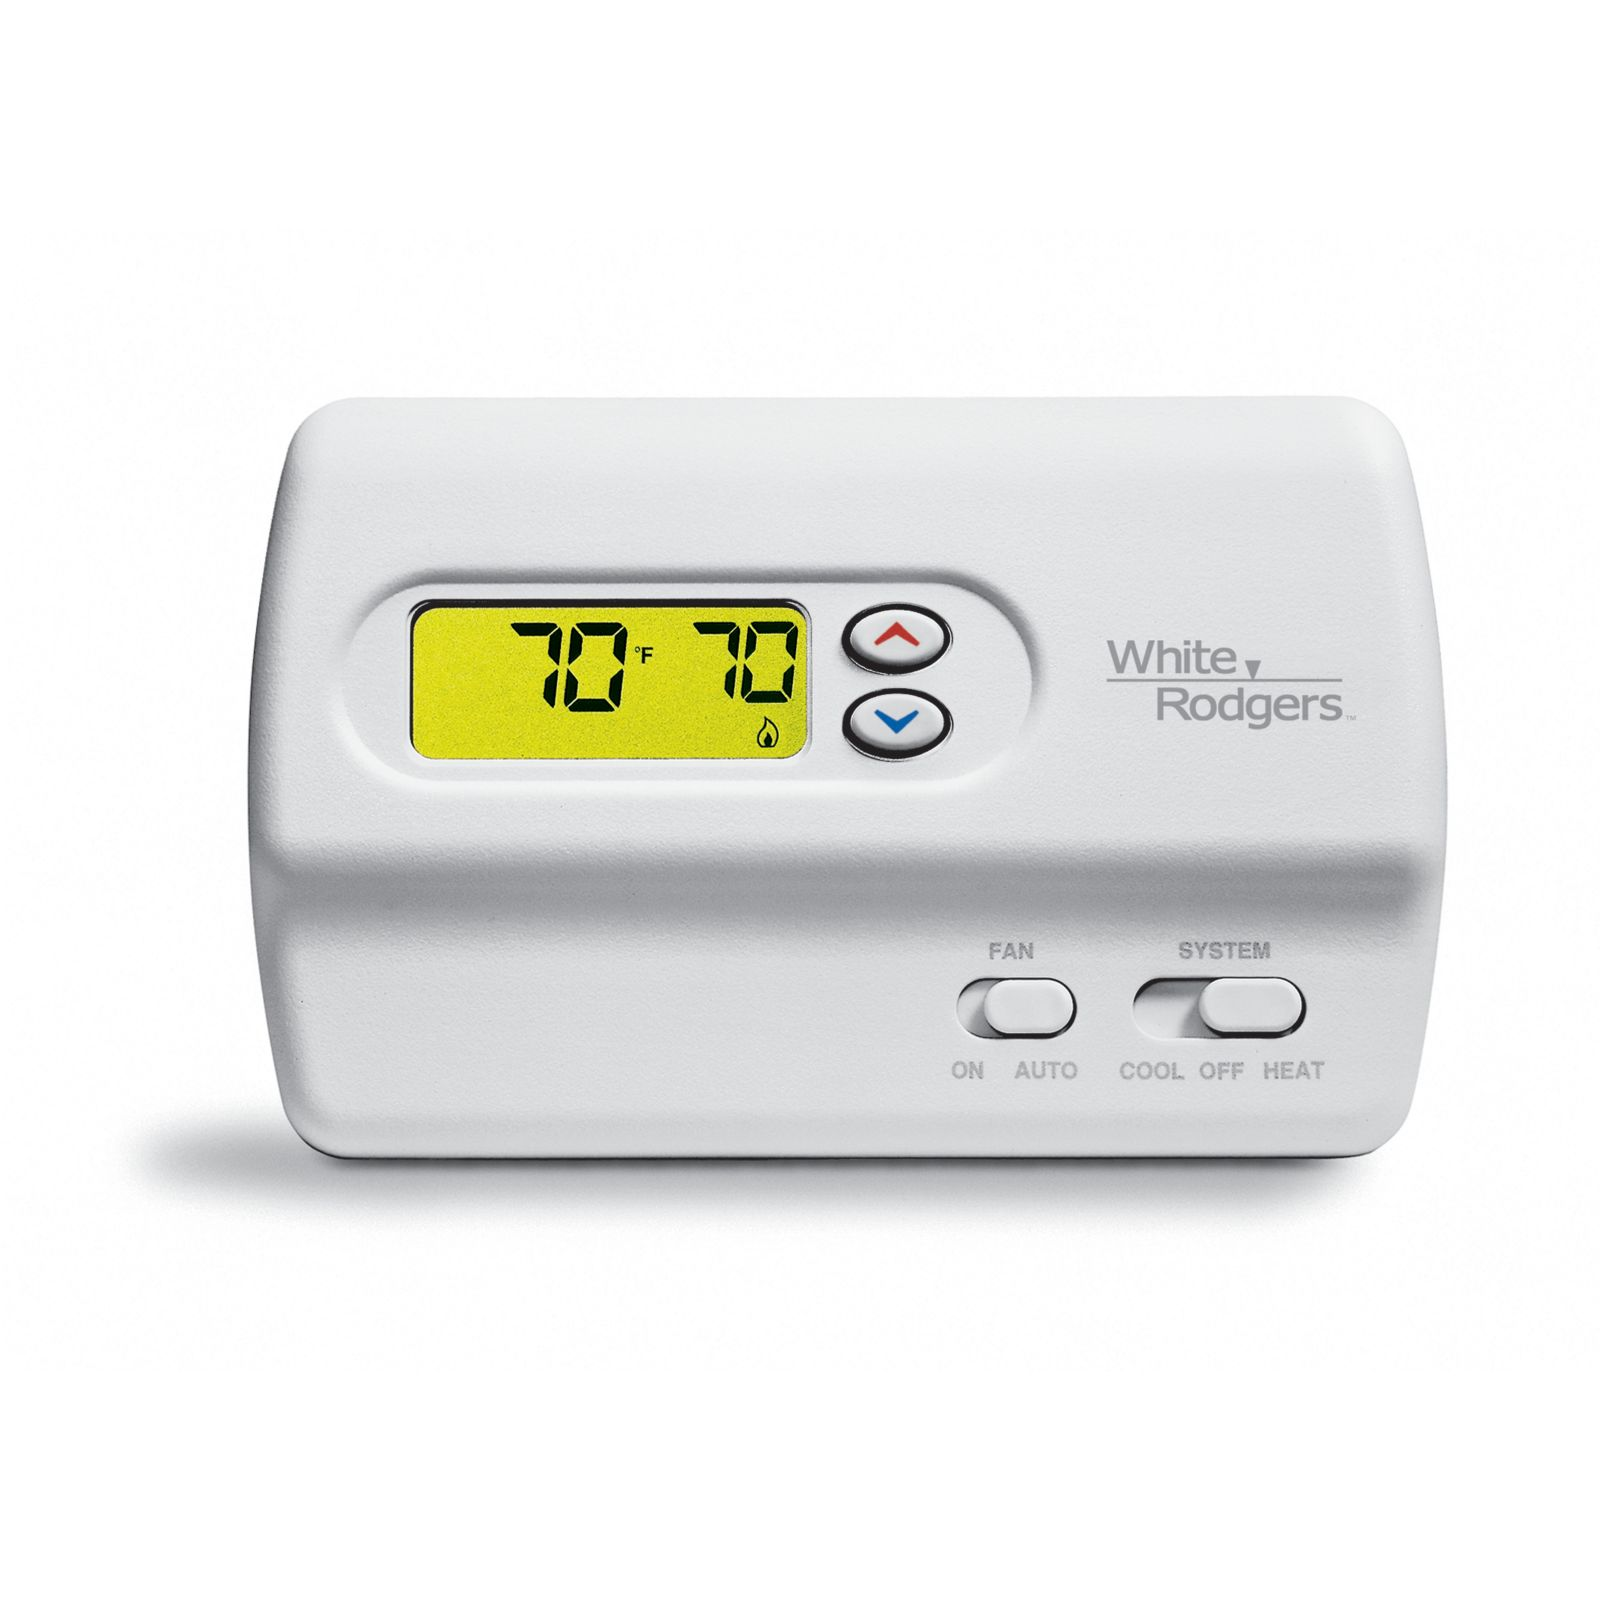 White-Rodgers 1F82-261 - 80 Series Programmable Digital Thermostat 2H/1C